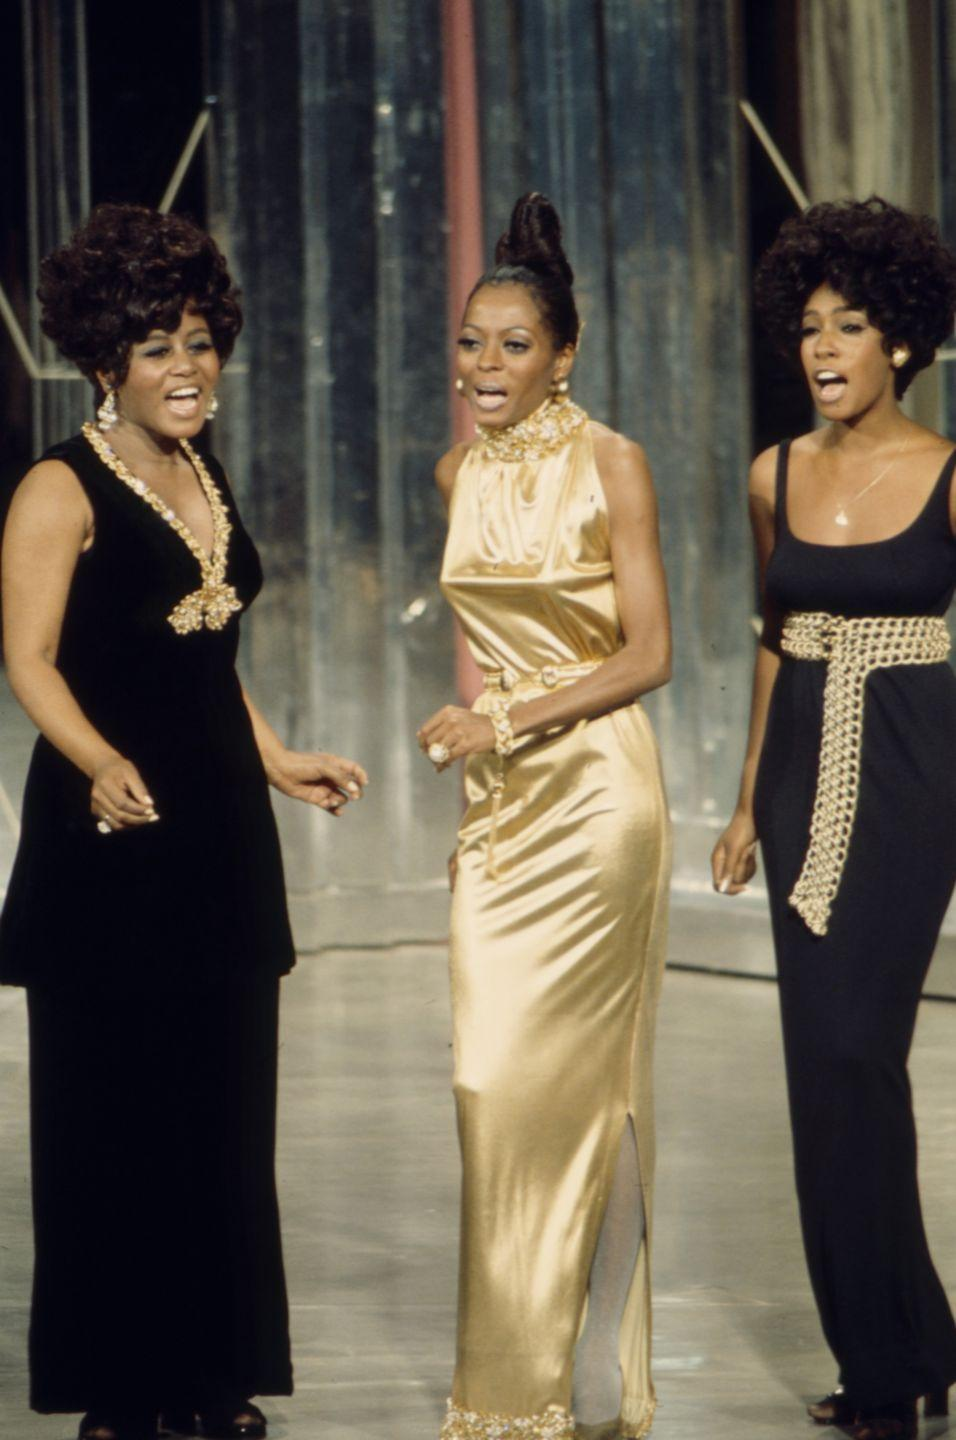 <p>By the late '60s, the group started to stray from their classic matching ensembles and began to show more individualism in their appearances. Ross remained the clear lead singer and started dressing in more distinct outfits for performances. </p>